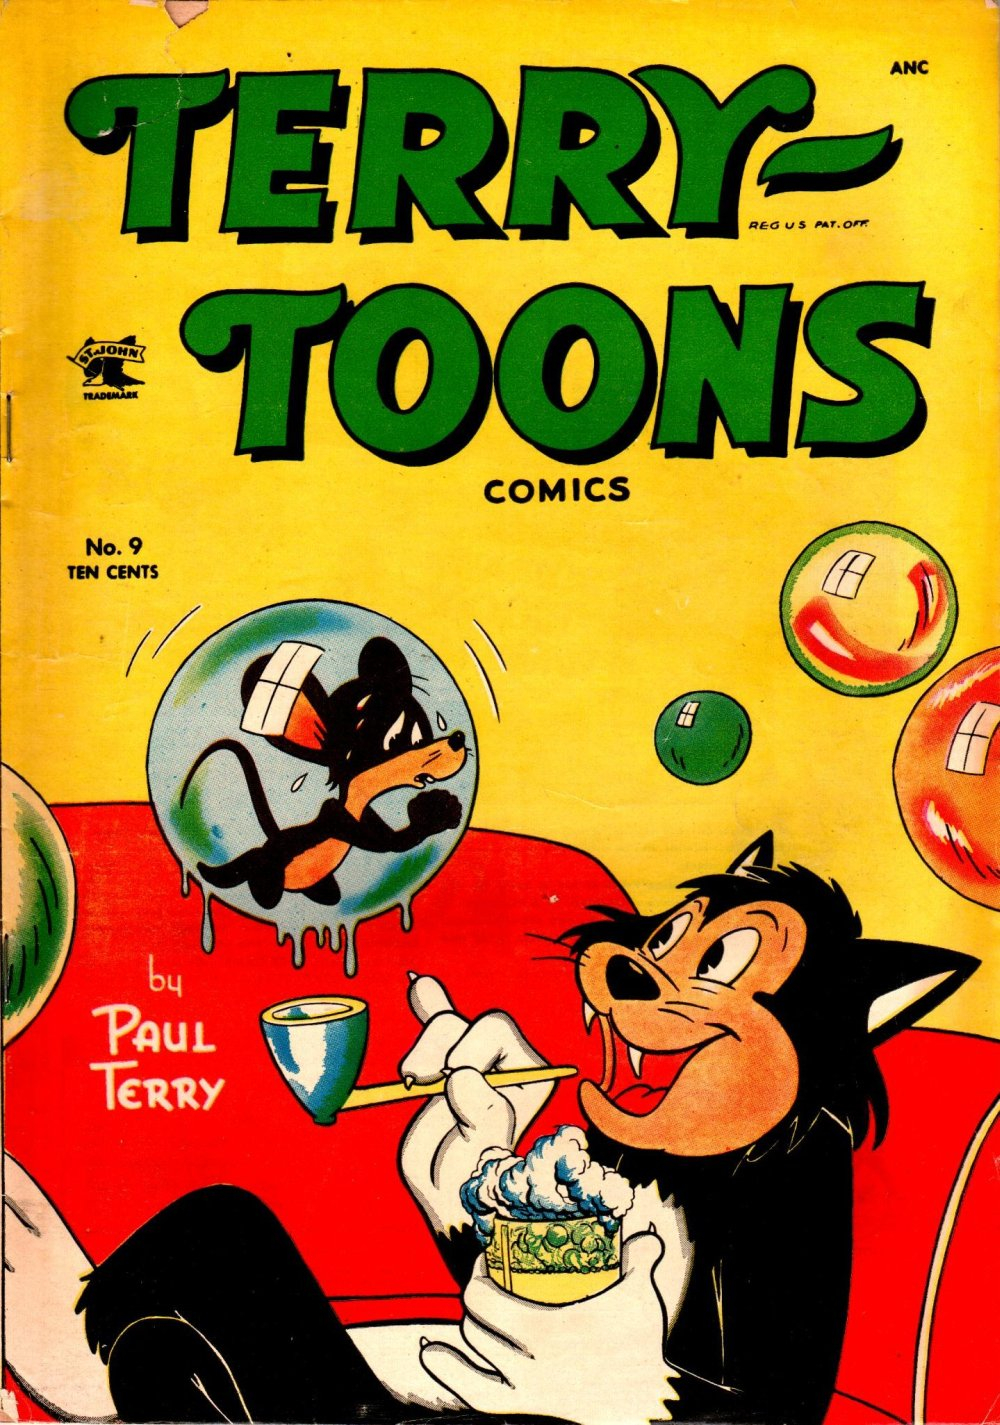 Terry-Toons Comics [UNKNOWN] V1 0009.jpg